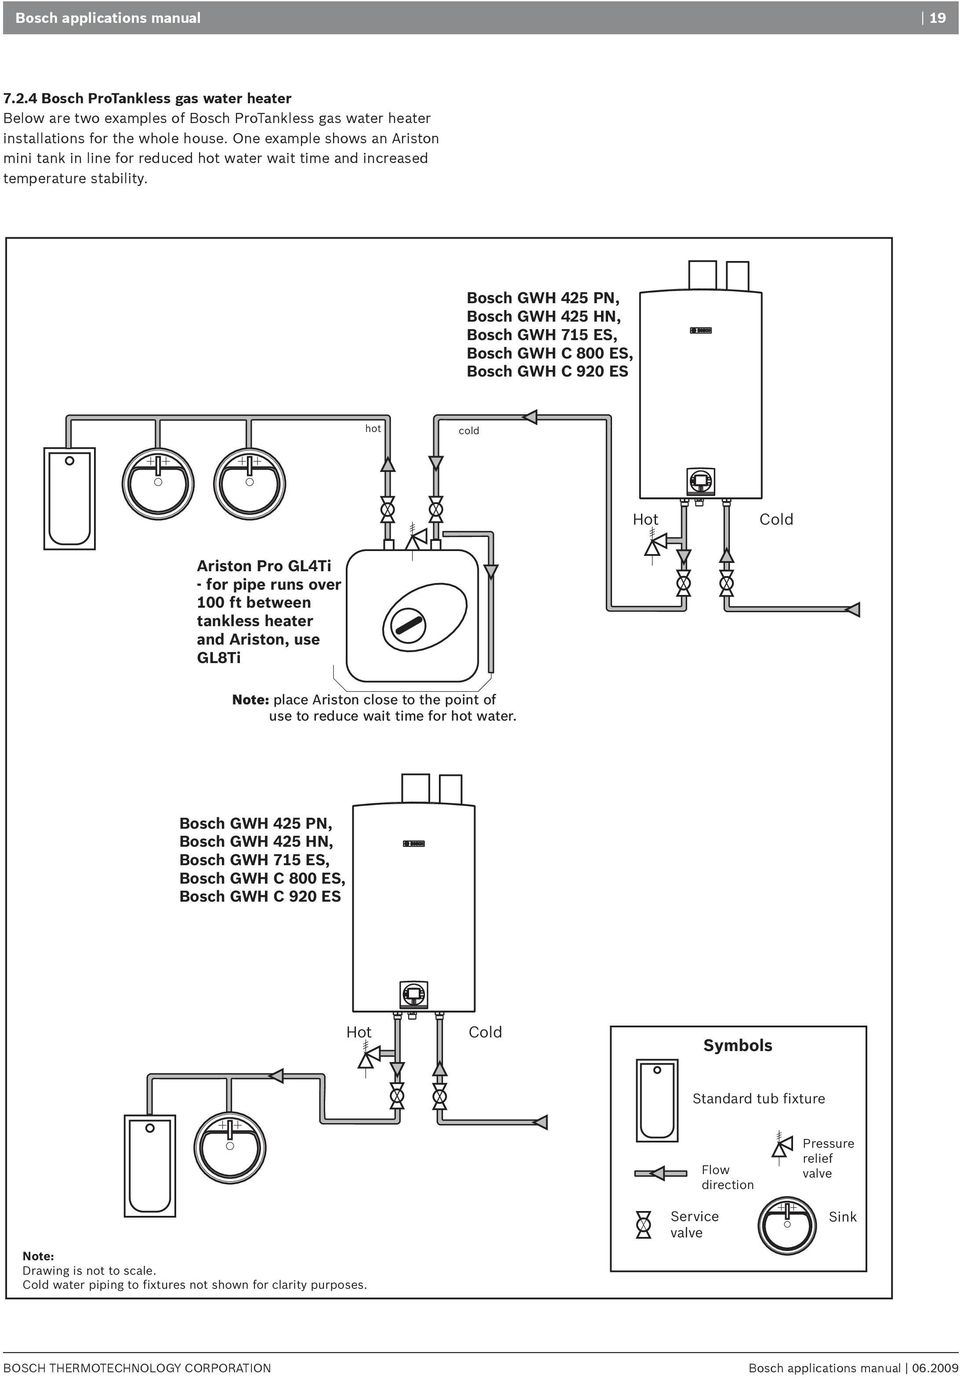 Bosch GWH 425 PN, Bosch GWH 425 HN, Bosch GWH 715 ES, Bosch. 20 20 Bosch  applications manual Bosch ProTankless gas water heater ...